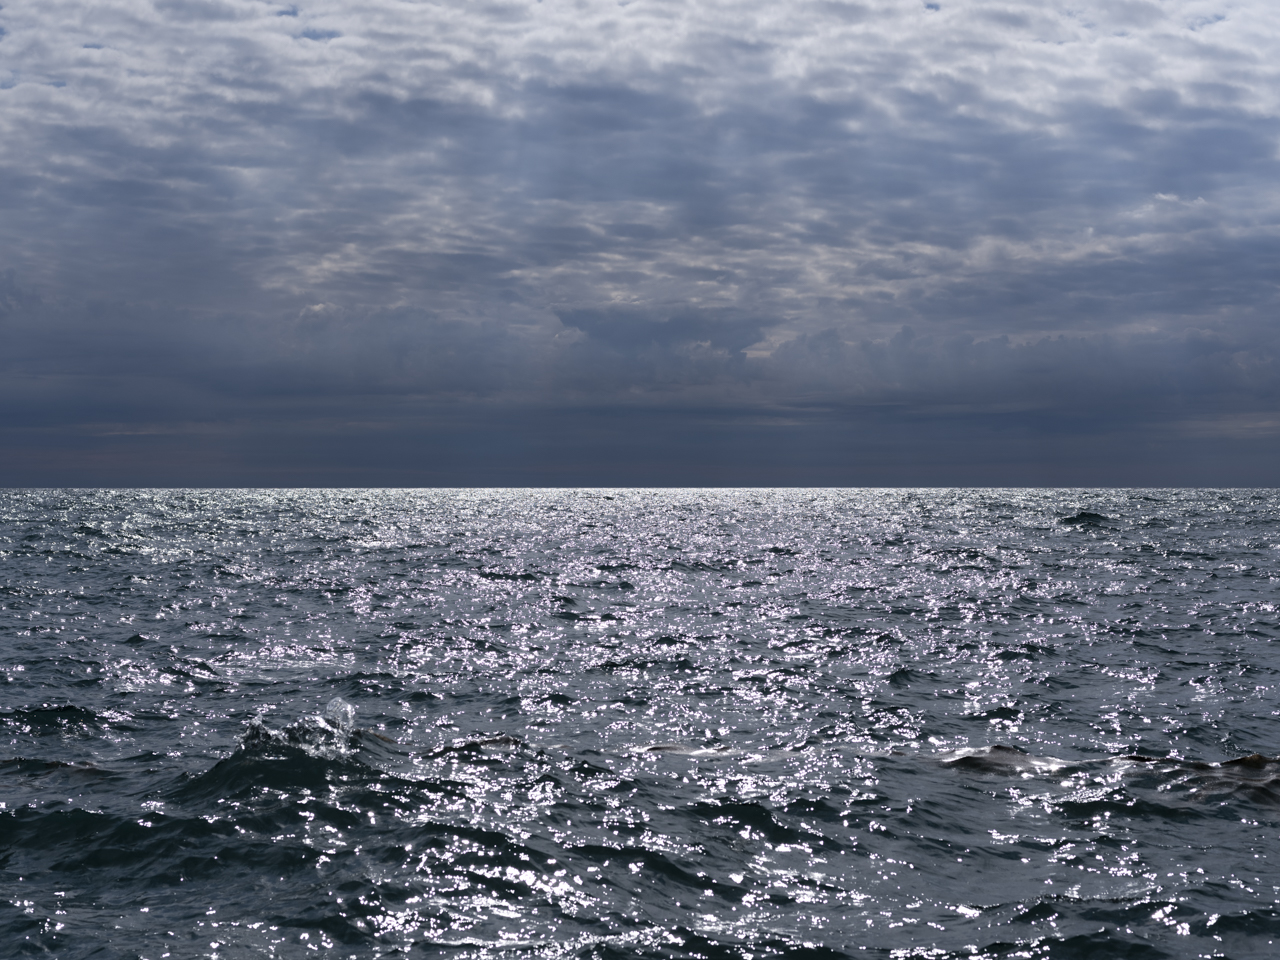 Silver skies and water on a mid-September day on Lake Michigan